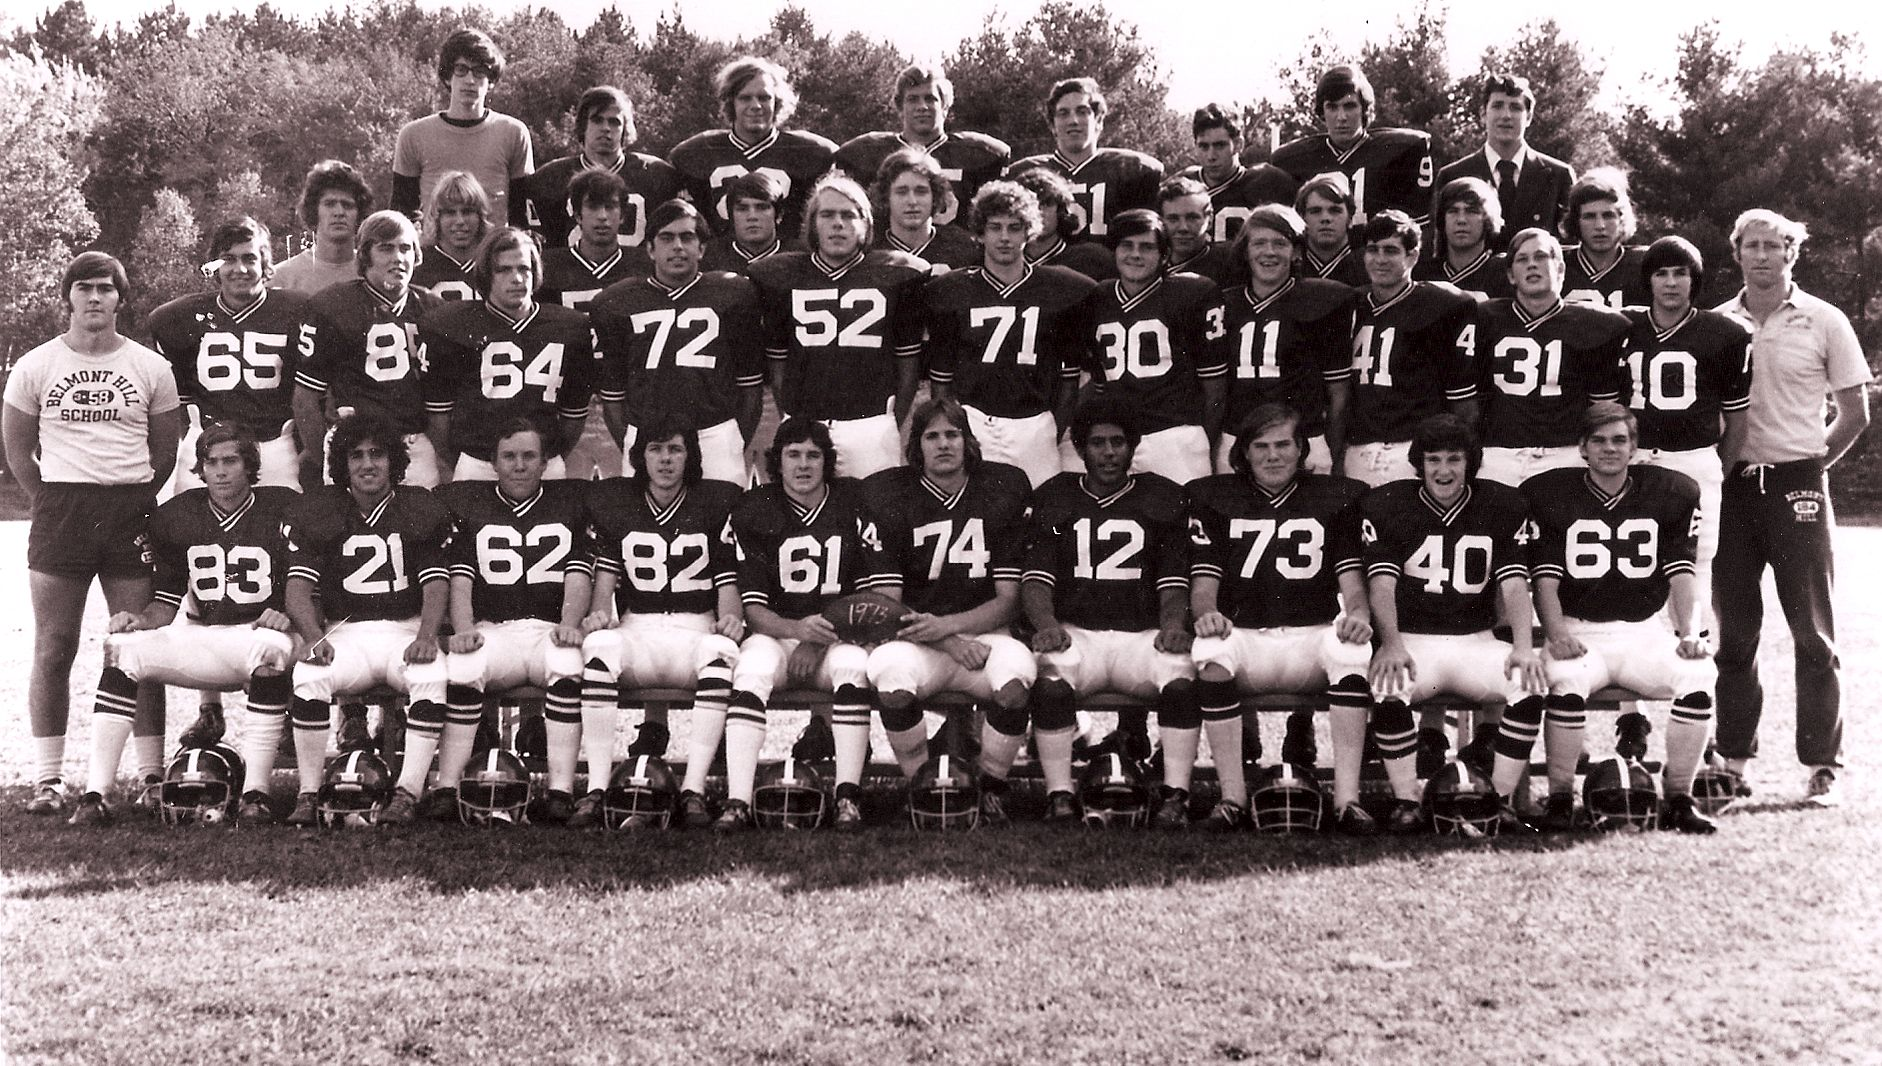 First Row: Howe, Wald, J. Sullivan, Ronan, Finnerty, Mazzone, Reynolds, C. Davis, Sheehan, PhinneySecond Row: Mr. O'Donnell, Mele, French, Mannix, Kerhulas, Porter, Morse, D. O'Connell, Casey, Sweeney, P., Sullivan, Pass, Mr. MackenzieThird Row: Mr. Clift, Parks, Guarnaccia, Hurley, S. Coughlin, Rogers, D. Sullivan, Henley, Barrett, GreenFourth Row; Freiman, C. Smith, Goodhue, Livingstone, Ullian, Blanco, Reiss, Pious